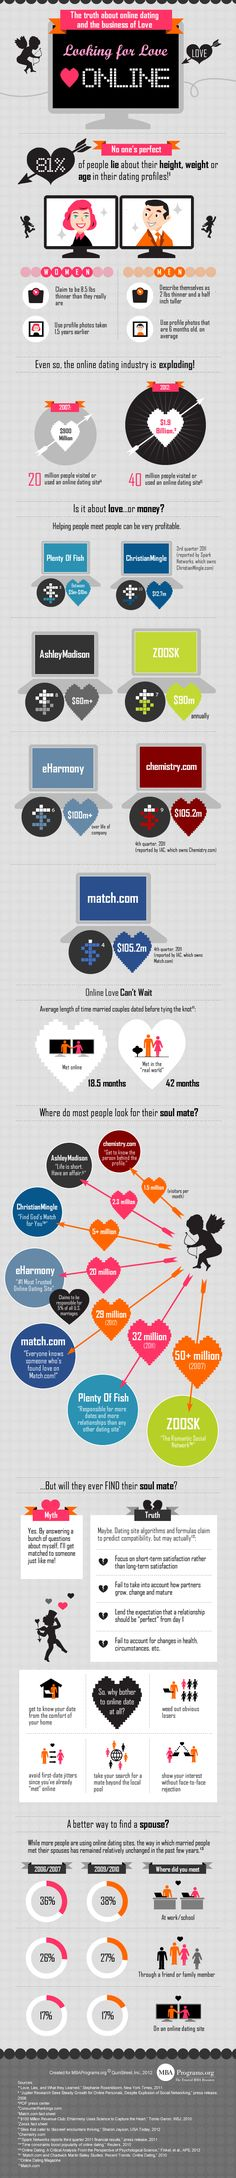 For Love or Money: Does Online Dating Really Work? | #Infographic